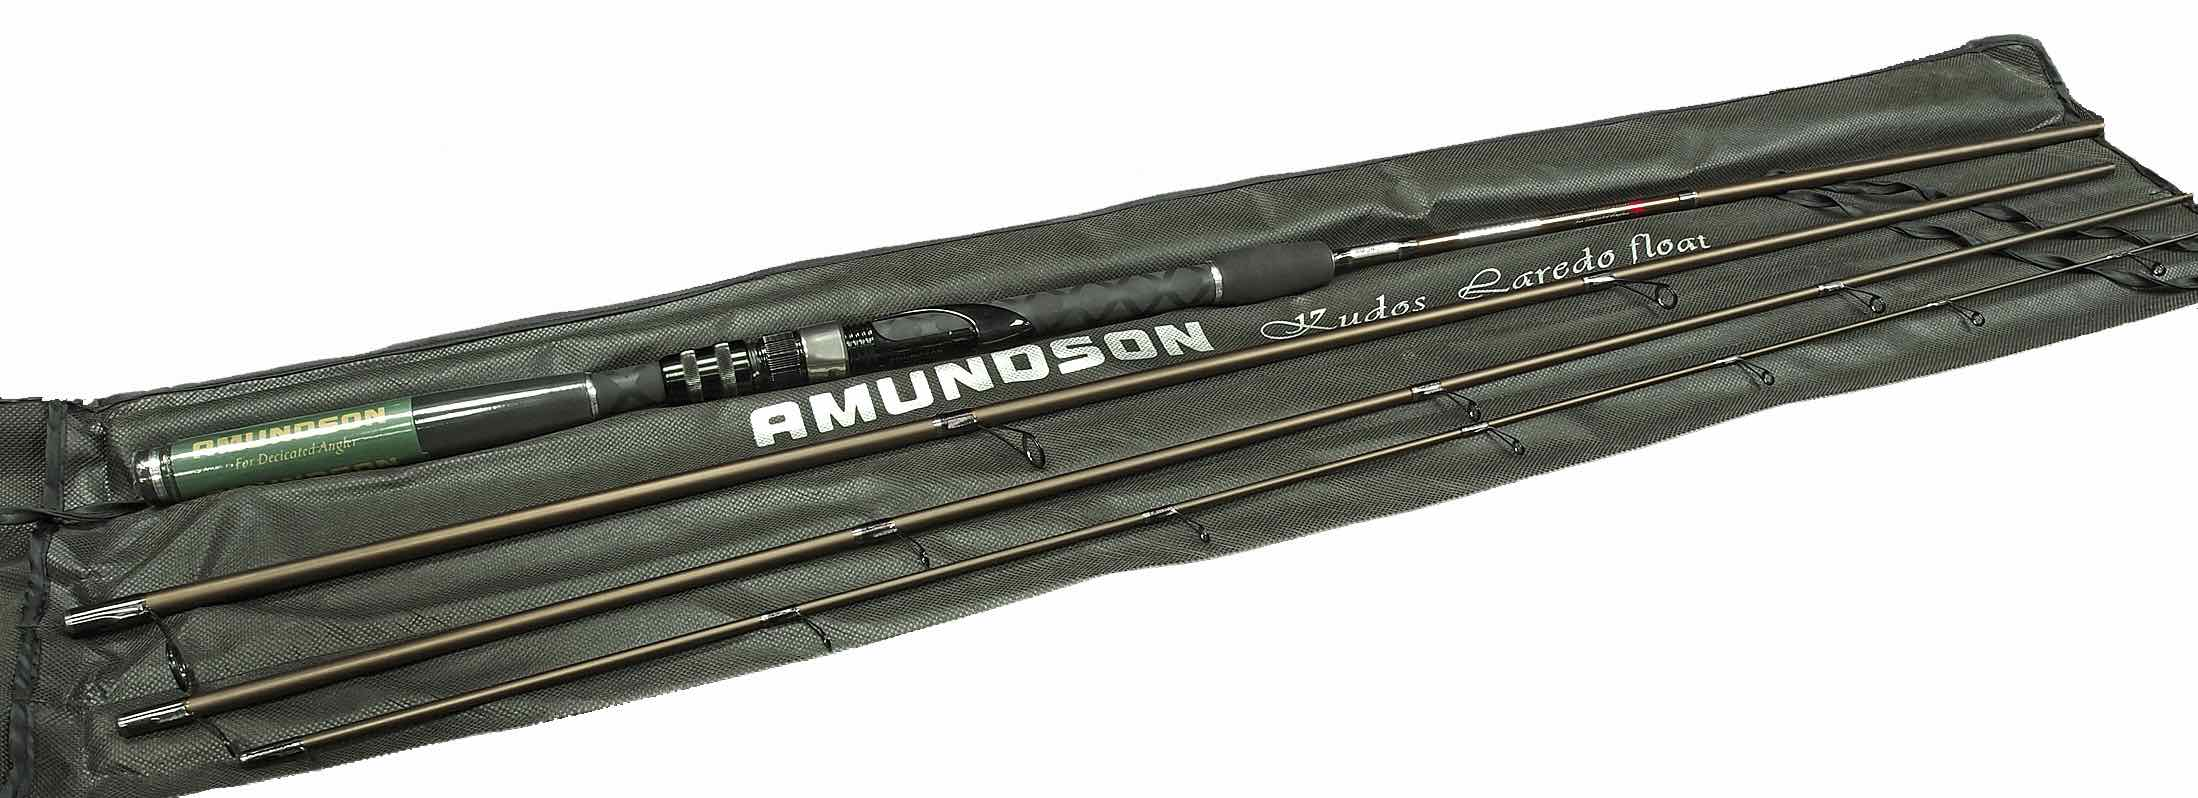 Amundson Centerpin Float Rod Amundsen Kudos Larado Float Centerpin Rod DD